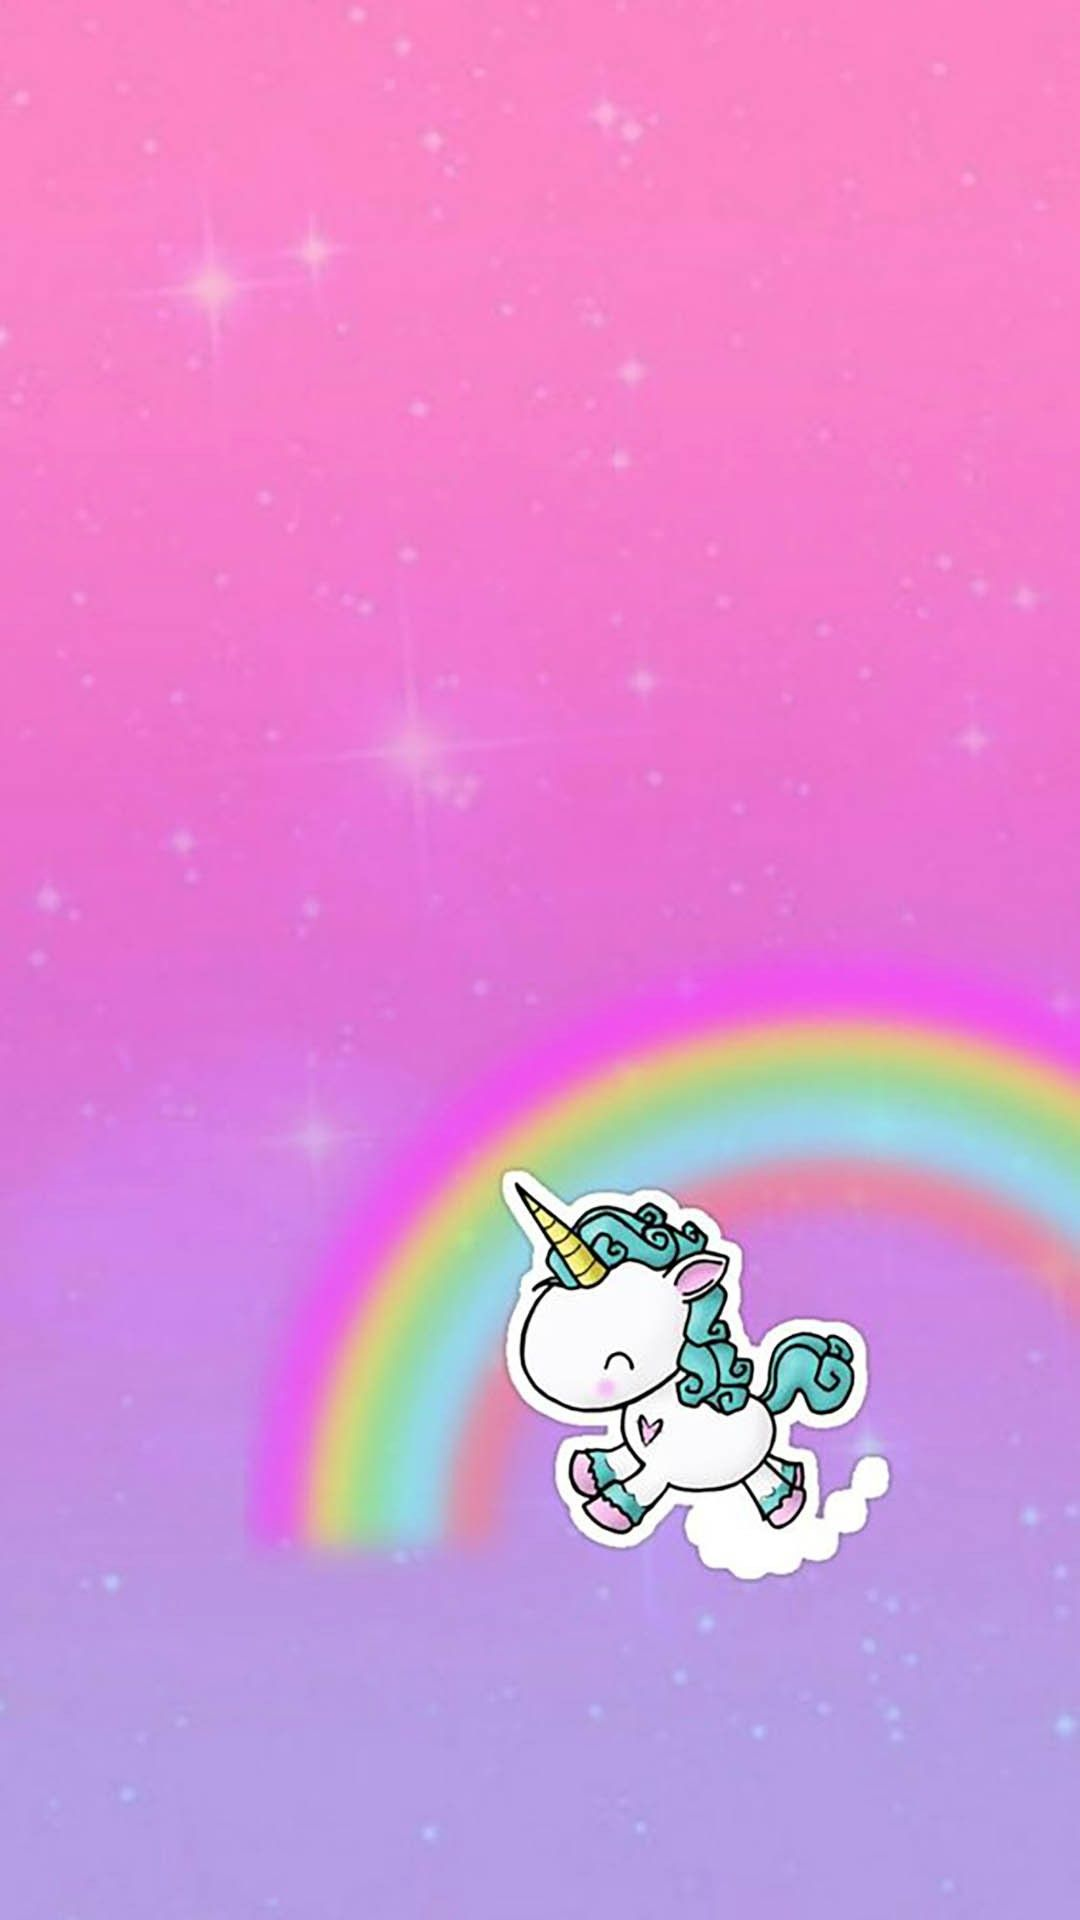 Rainbow Unicorn Galaxy Wallpaper Androidwallpaper